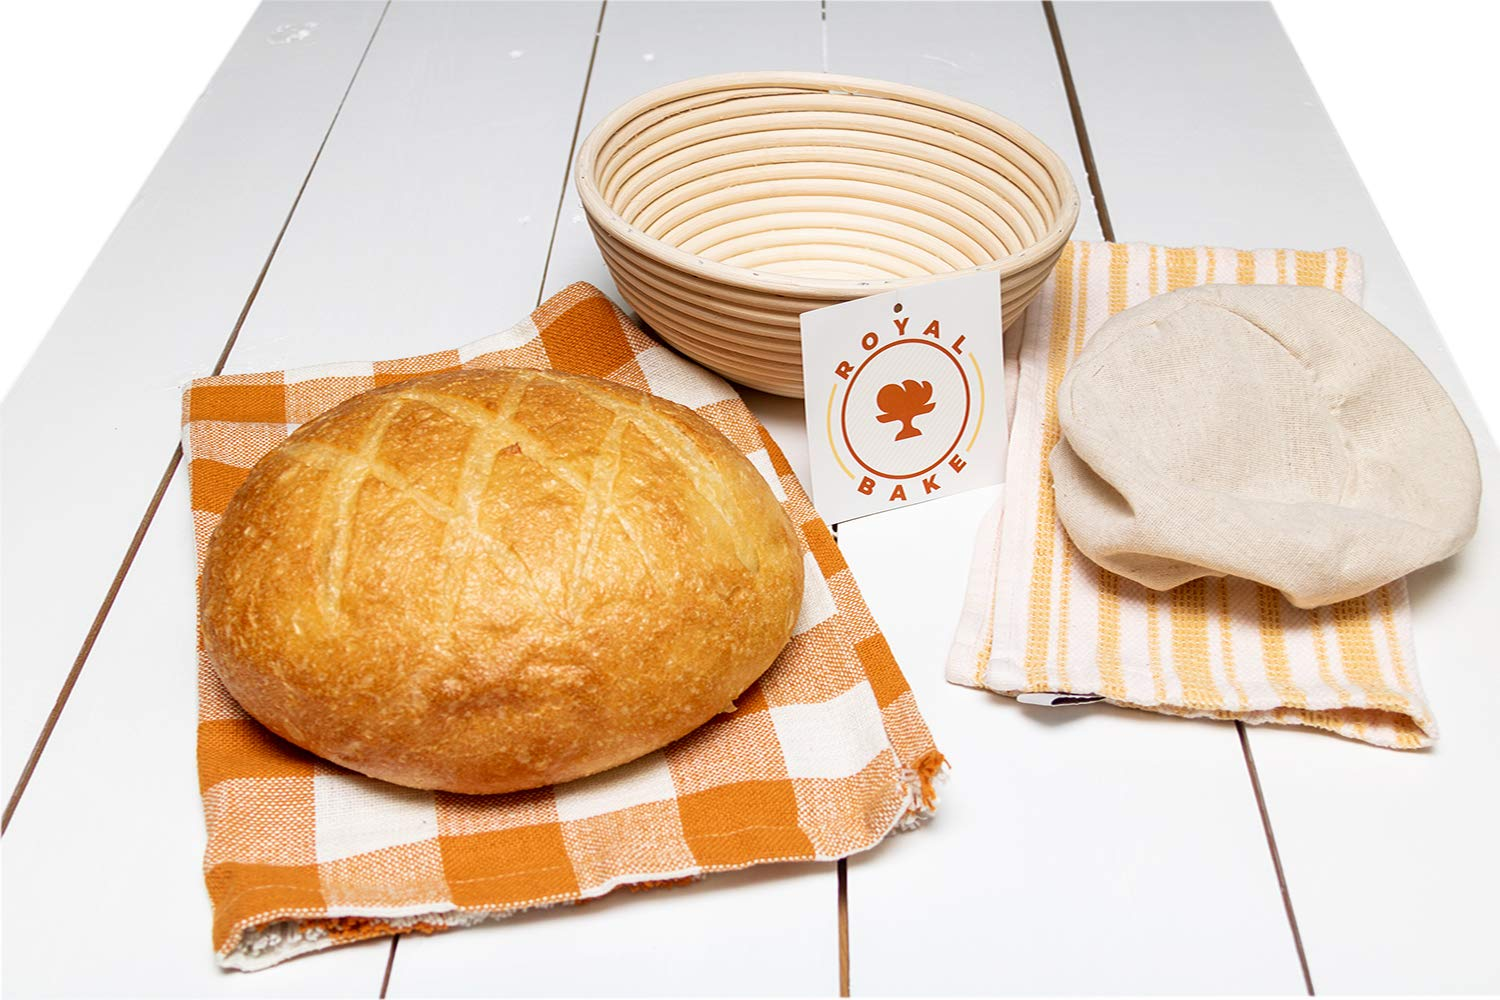 Round Baking Bread Basket Gift For Professional and Home Bakers RoyalBake Banneton Bread Proofing Basket Premium 9 Inch Sourdough Bowl and Cloth Liner